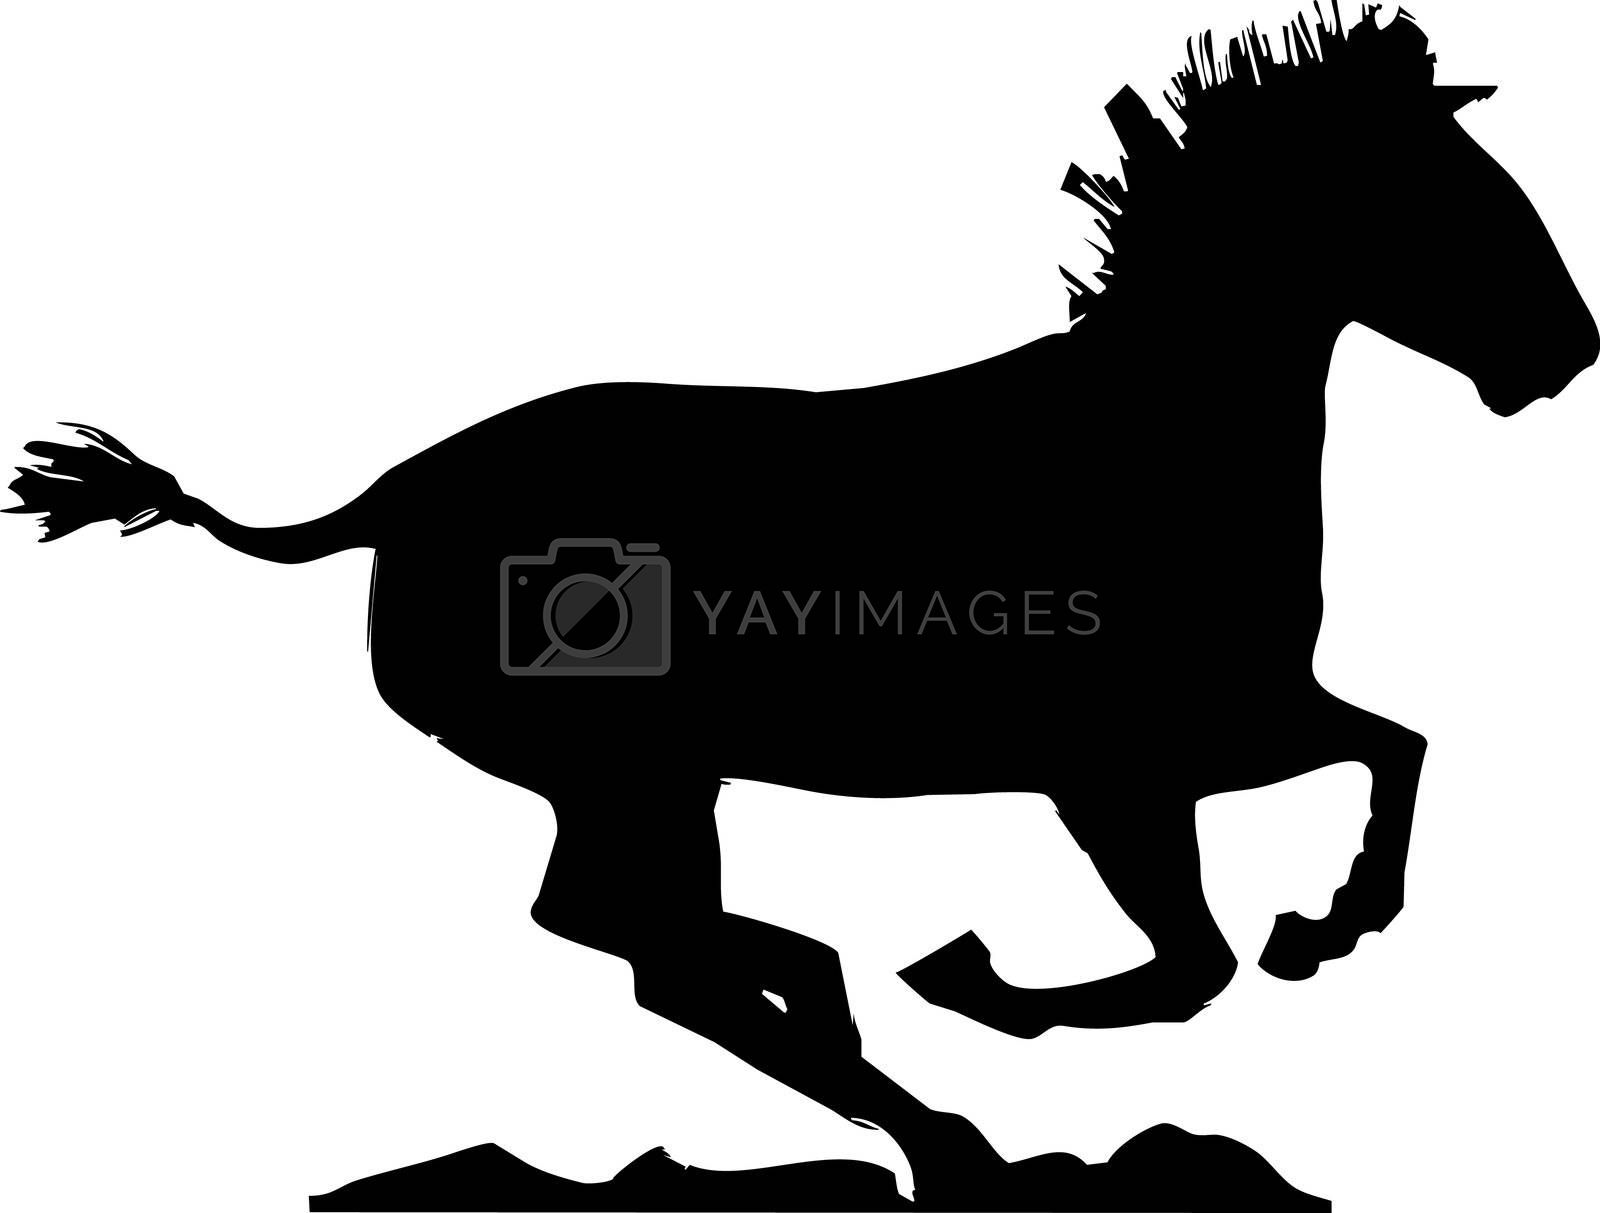 A Mongolian horse gallops to the right of the image.